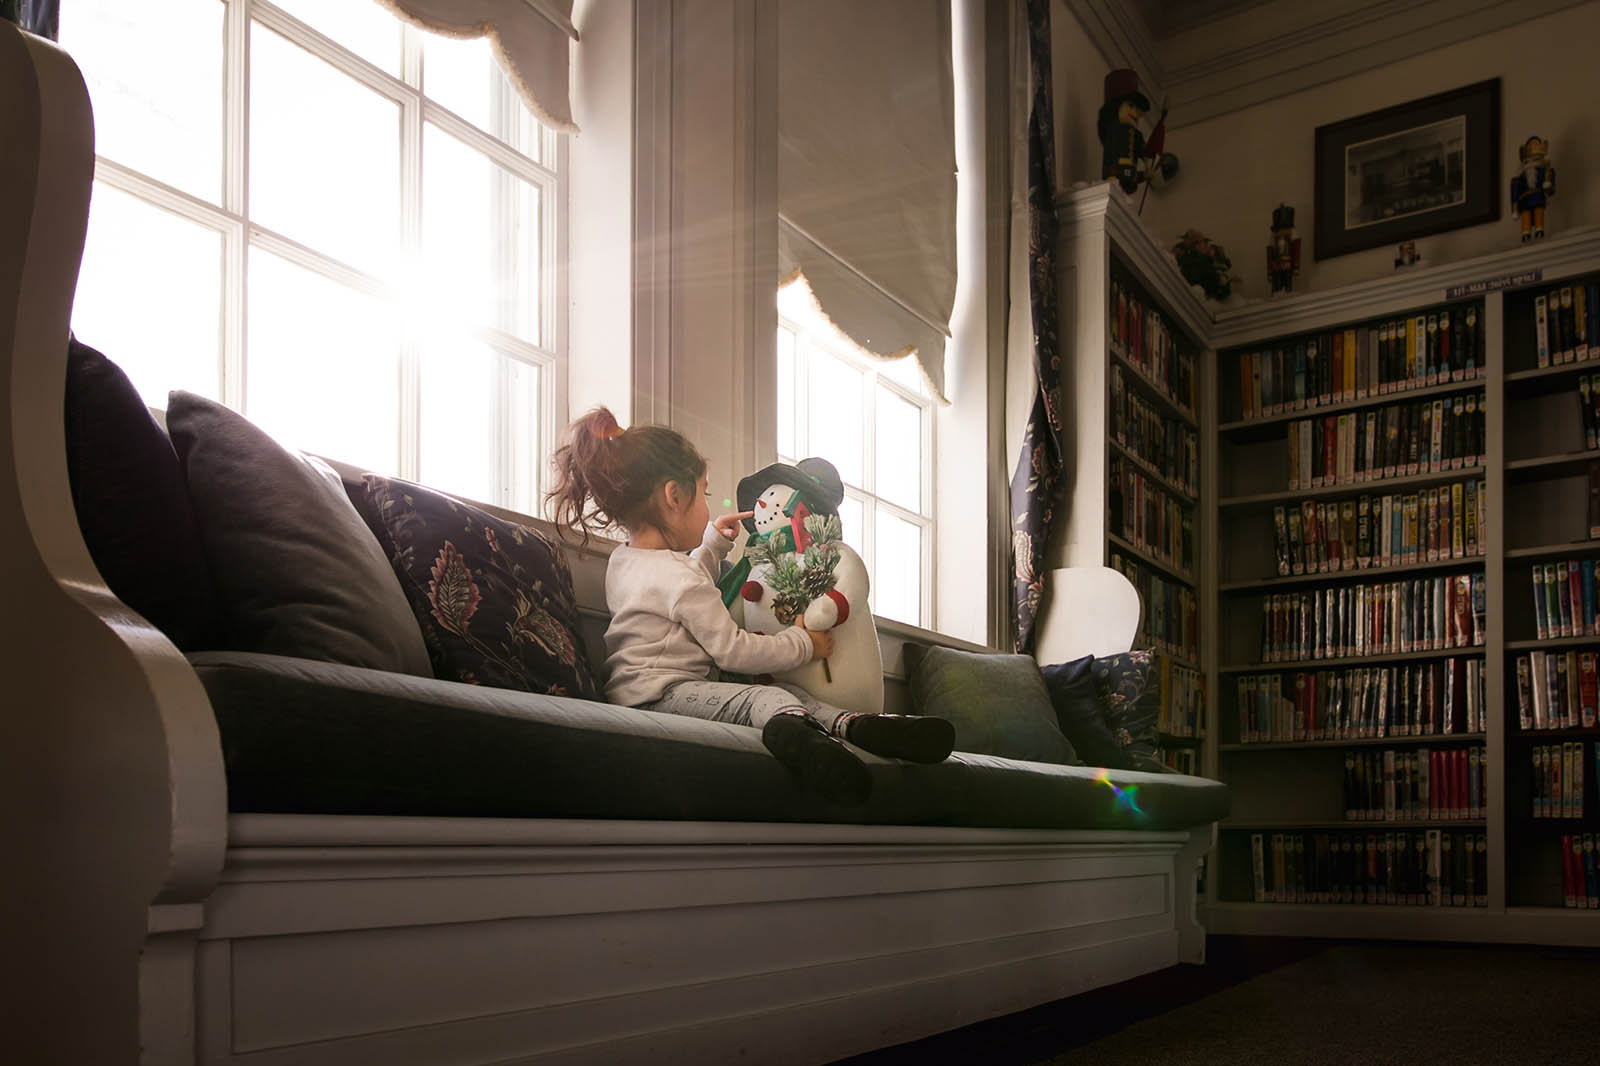 5 Tips for creating magical holiday photos indoors